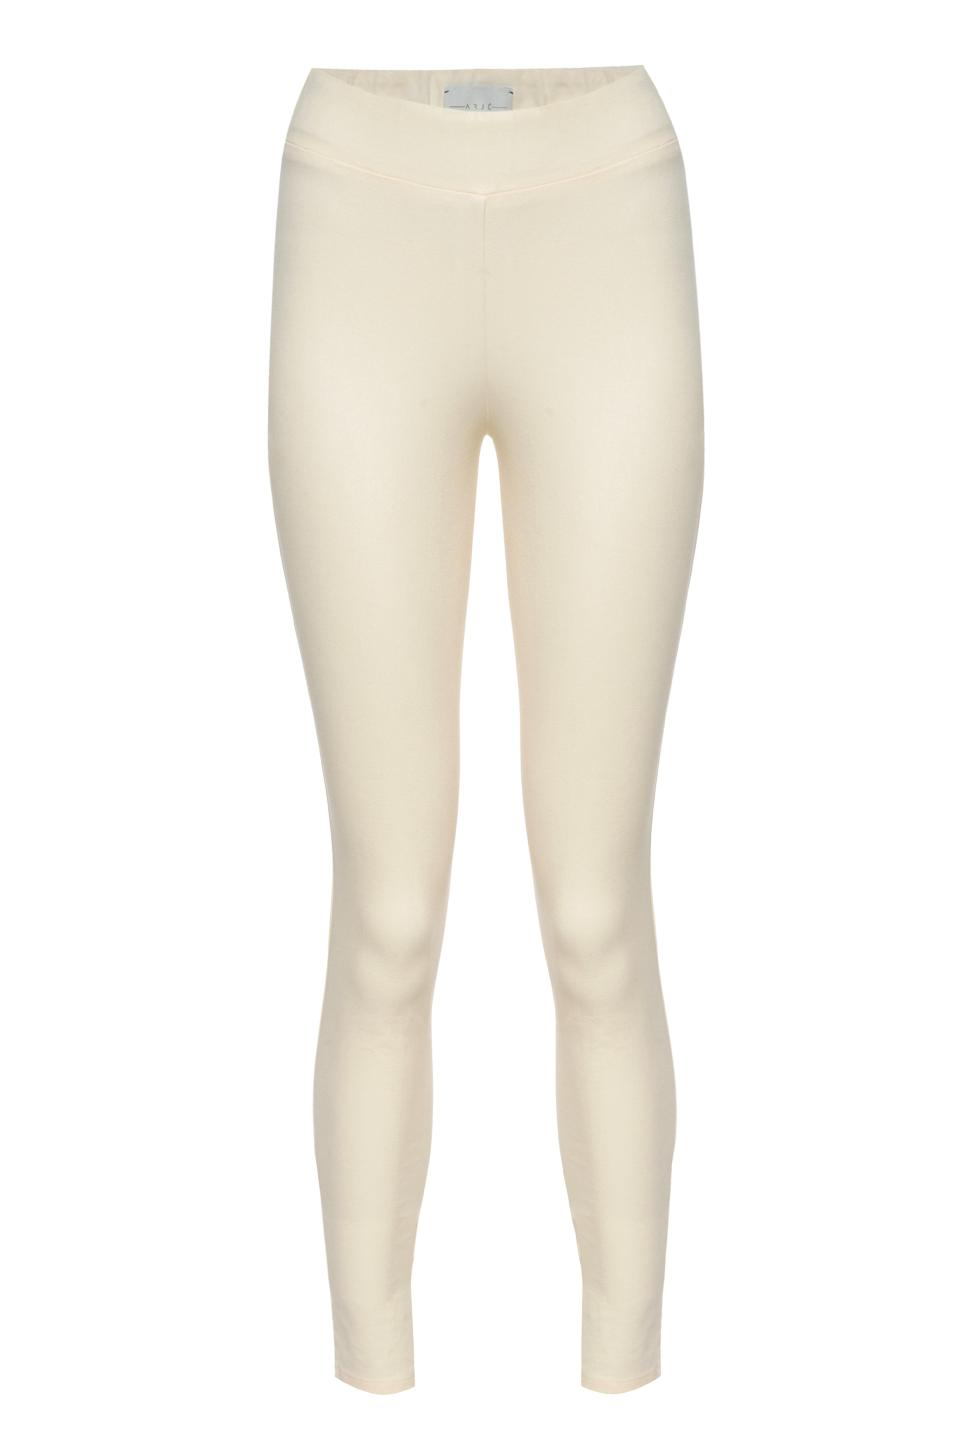 THE PIA PULL ON PANTS 3